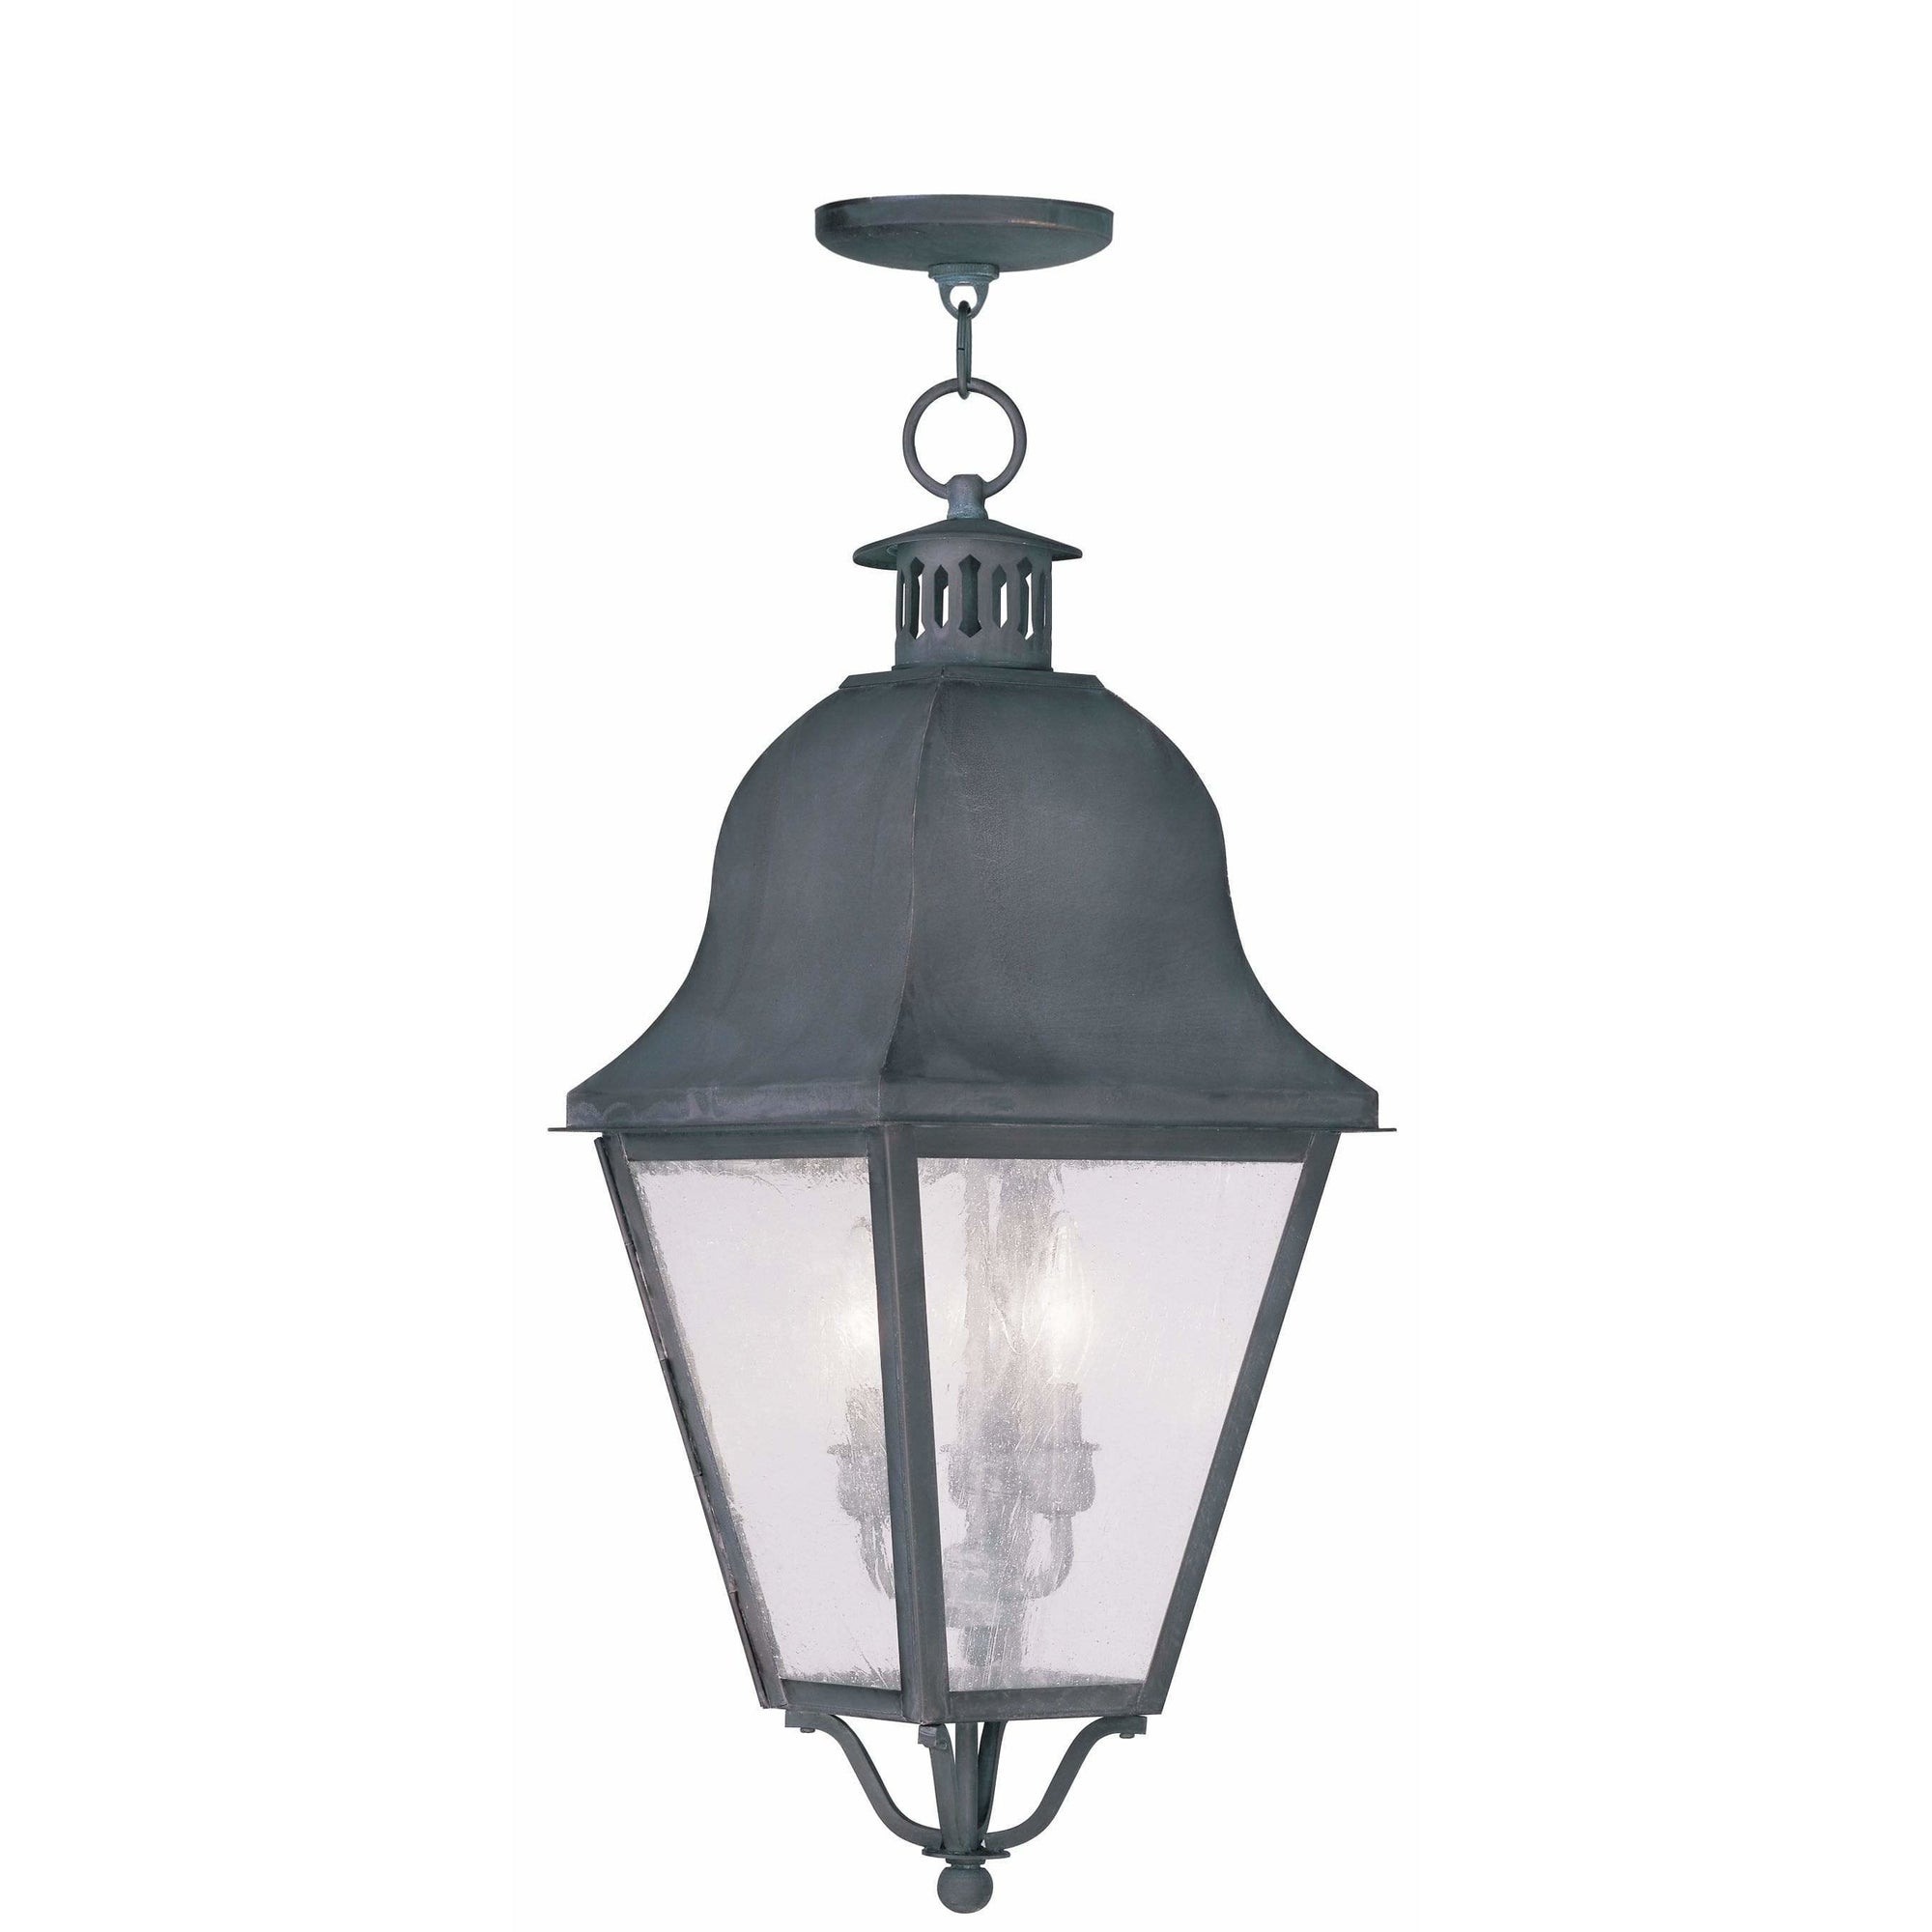 Livex Lighting Outdoor Pendants Lanterns Charcoal / Seeded Glass Amwell Charcoal Outdoor Pendant Lantern  By Livex Lighting 2557-61